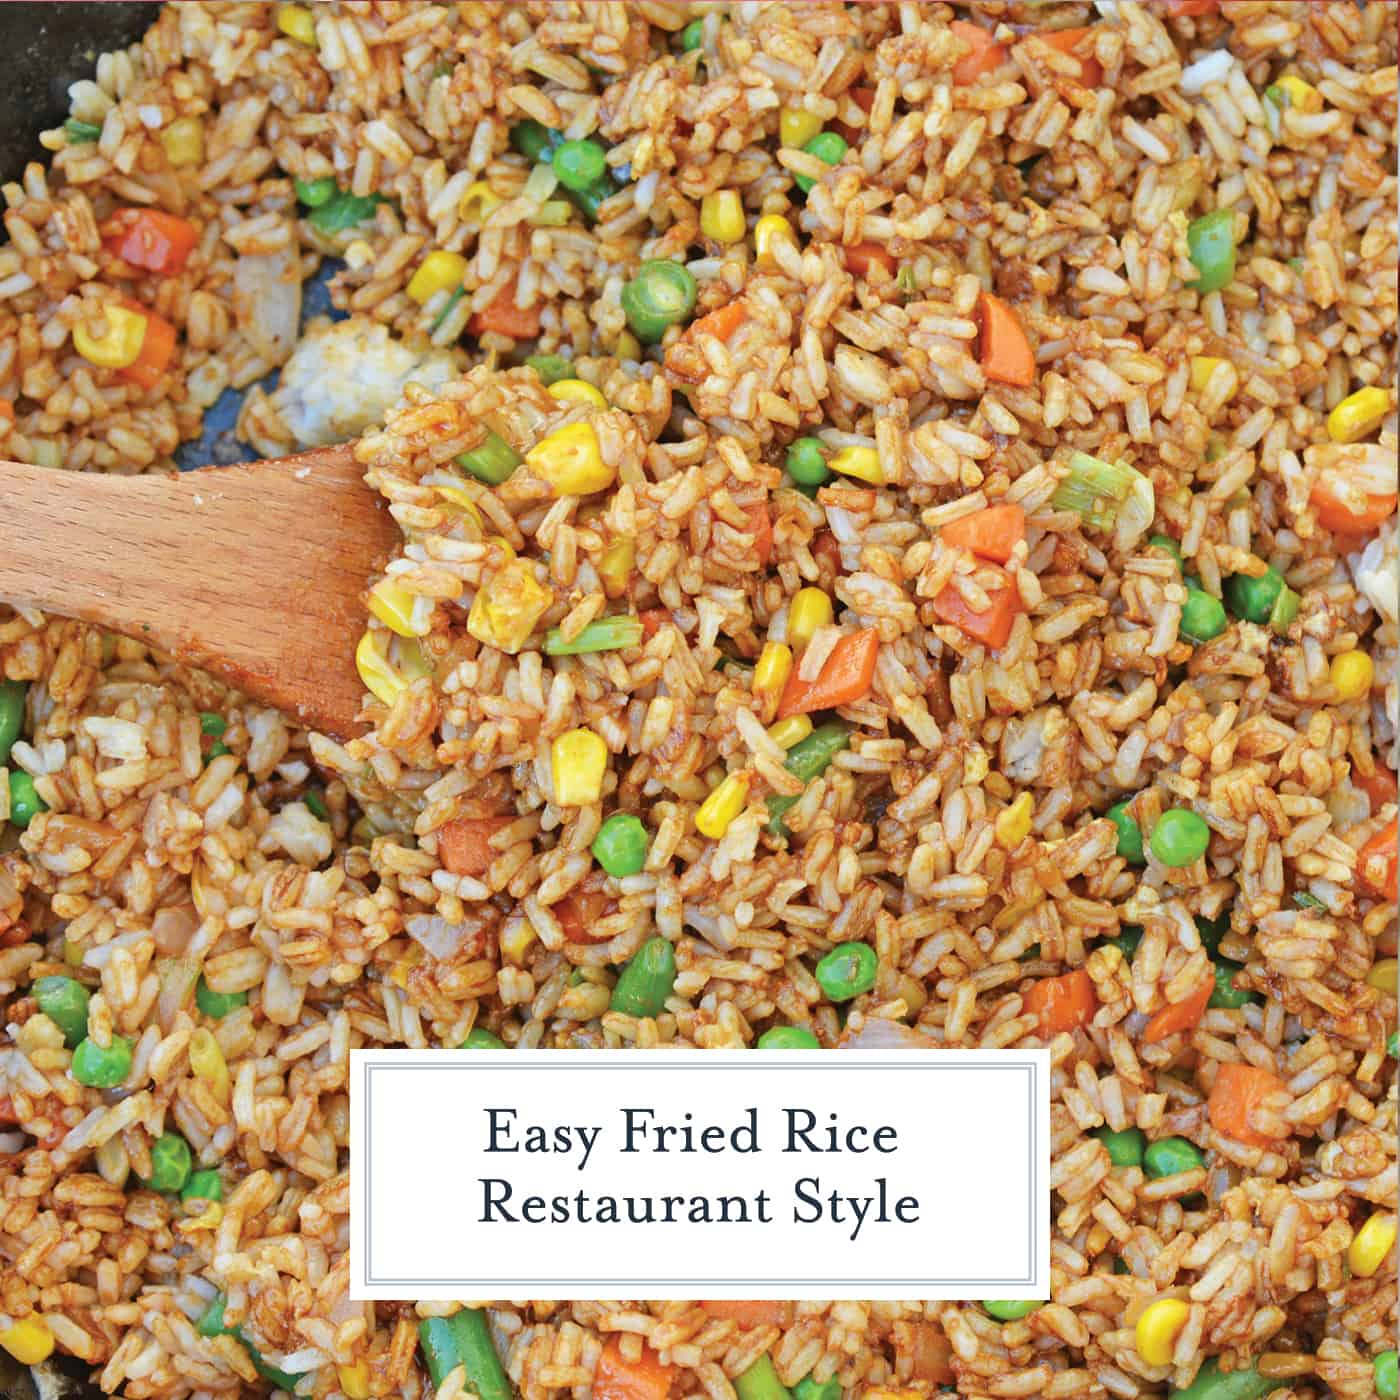 Easy Fried Rice is the best restaurant style fried rice you'll ever make! Just 15 minutes and a great way to clean out the vegetable drawer. #easyfriedrice #friedricerecipe www.savoryexperiments.com